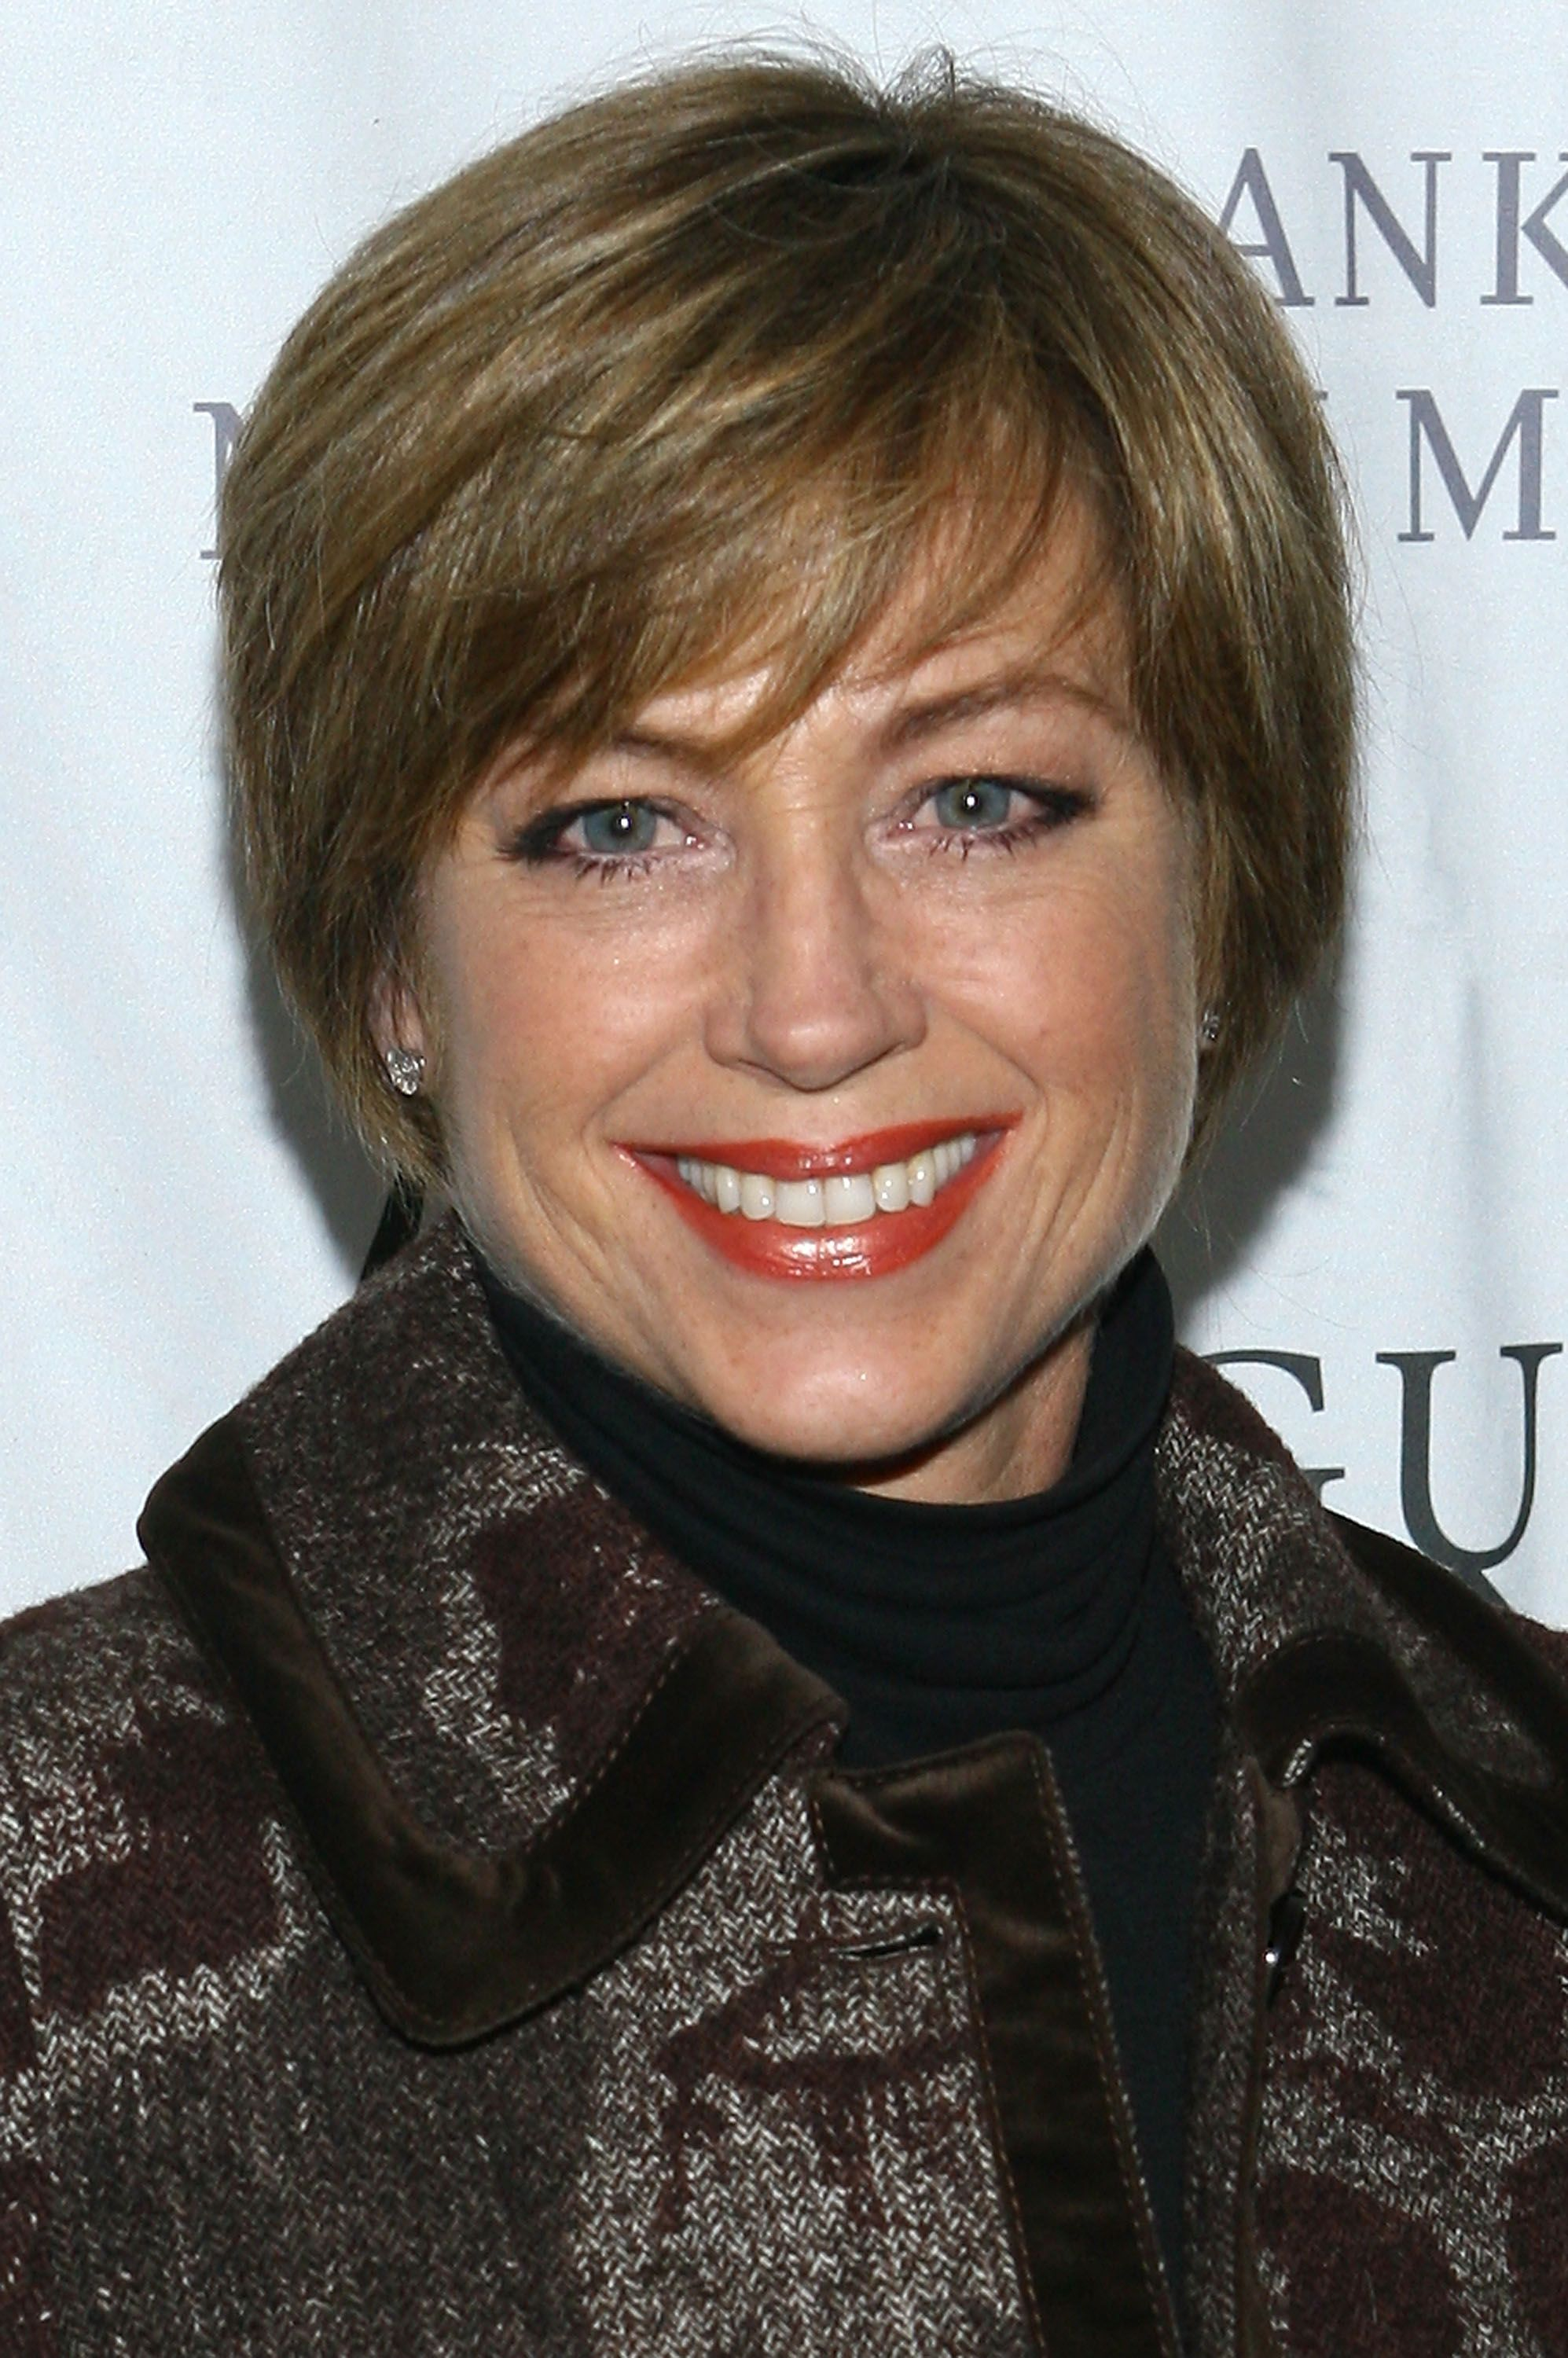 dorothy hamill | dorothy hamill: information from answers